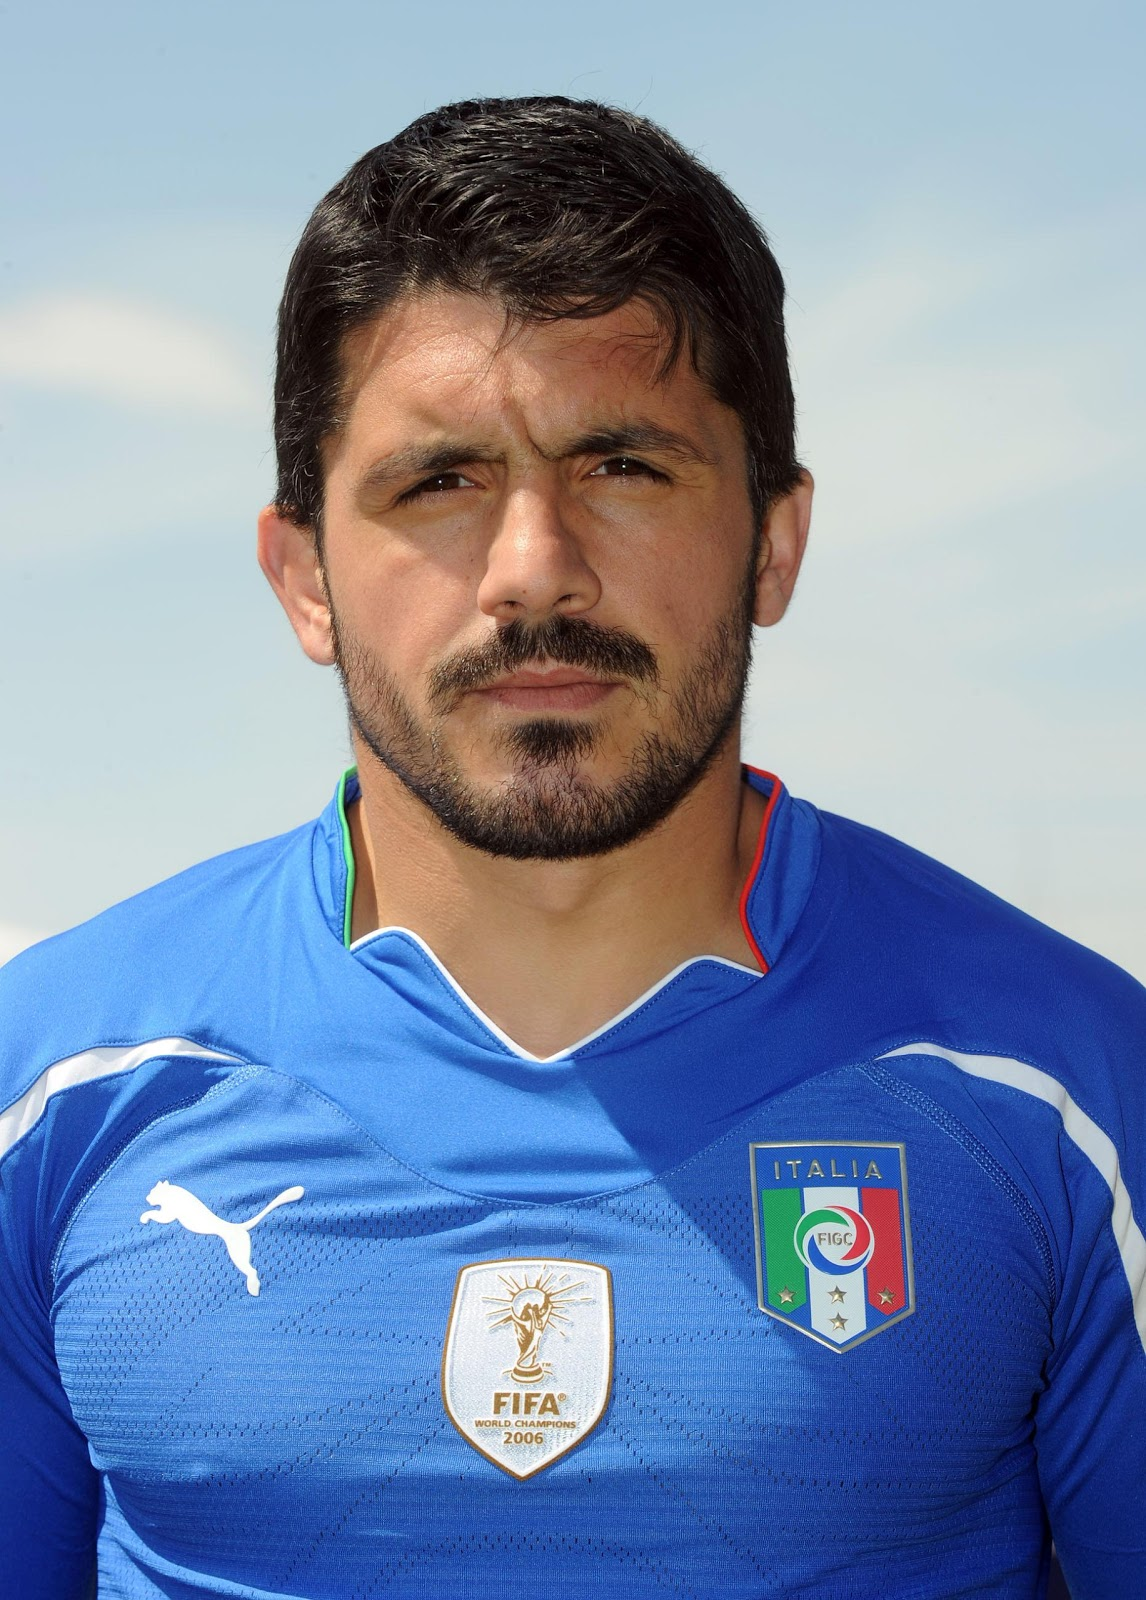 gattuso - photo #34